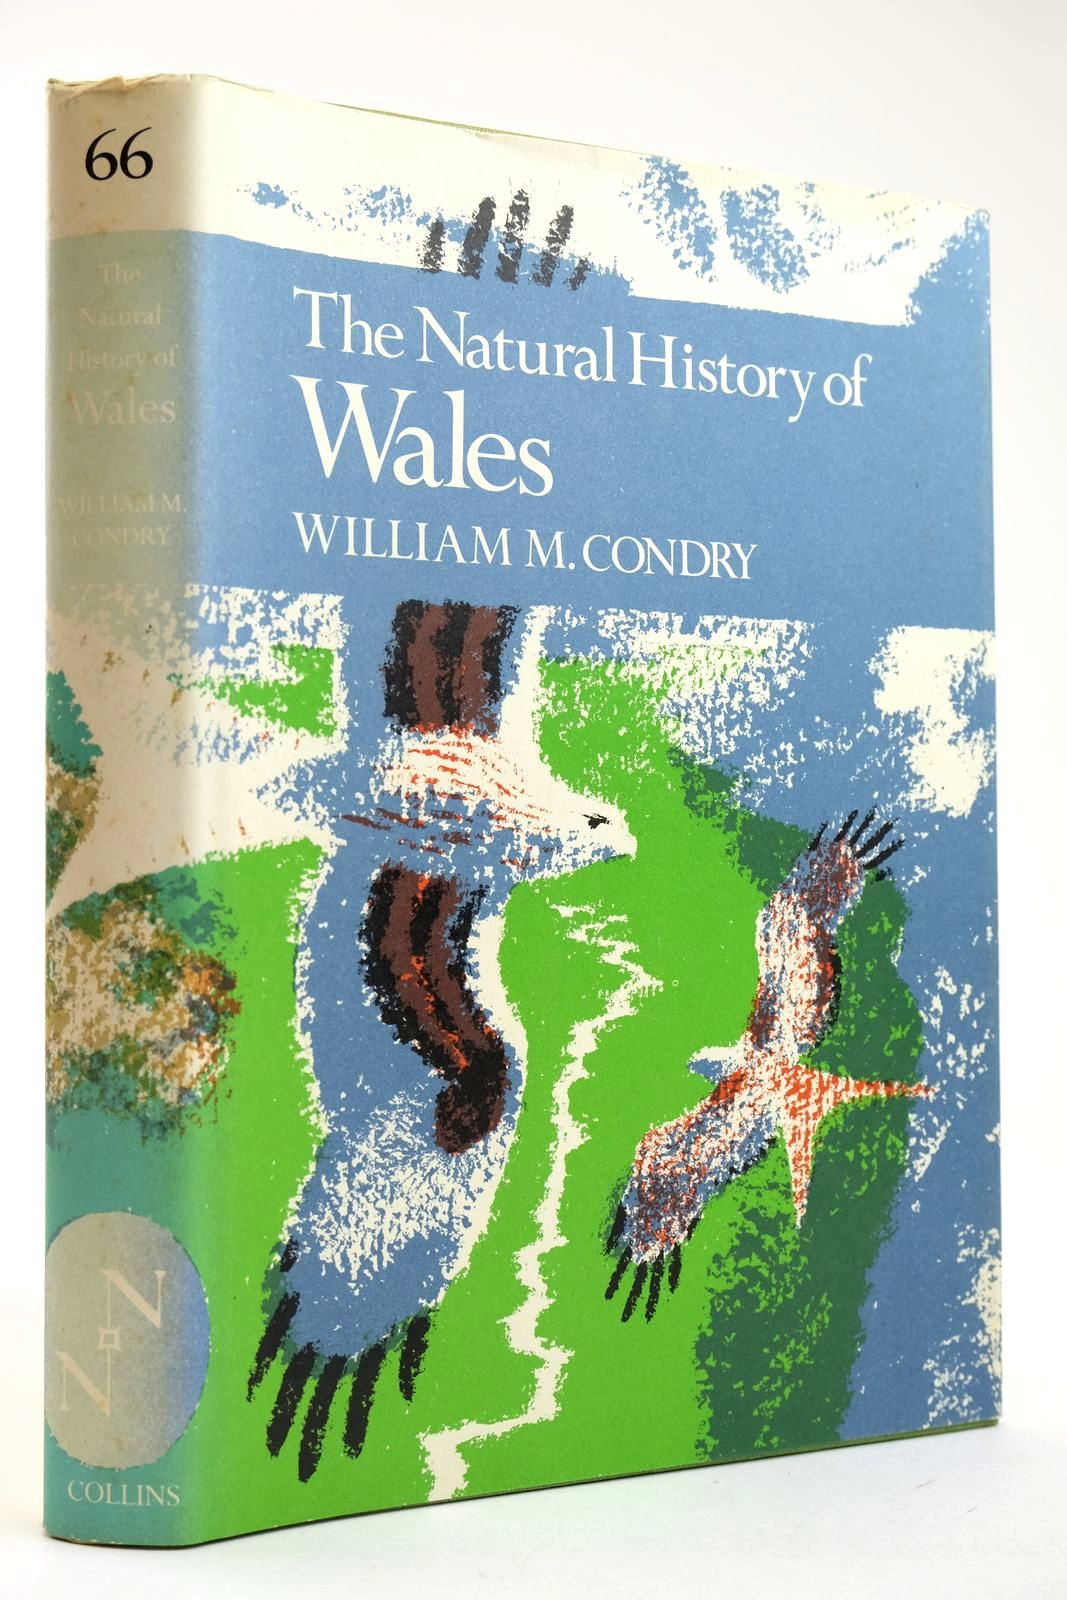 Photo of THE NATURAL HISTORY OF WALES (NN 66) written by Condry, William M. published by Collins (STOCK CODE: 2132478)  for sale by Stella & Rose's Books